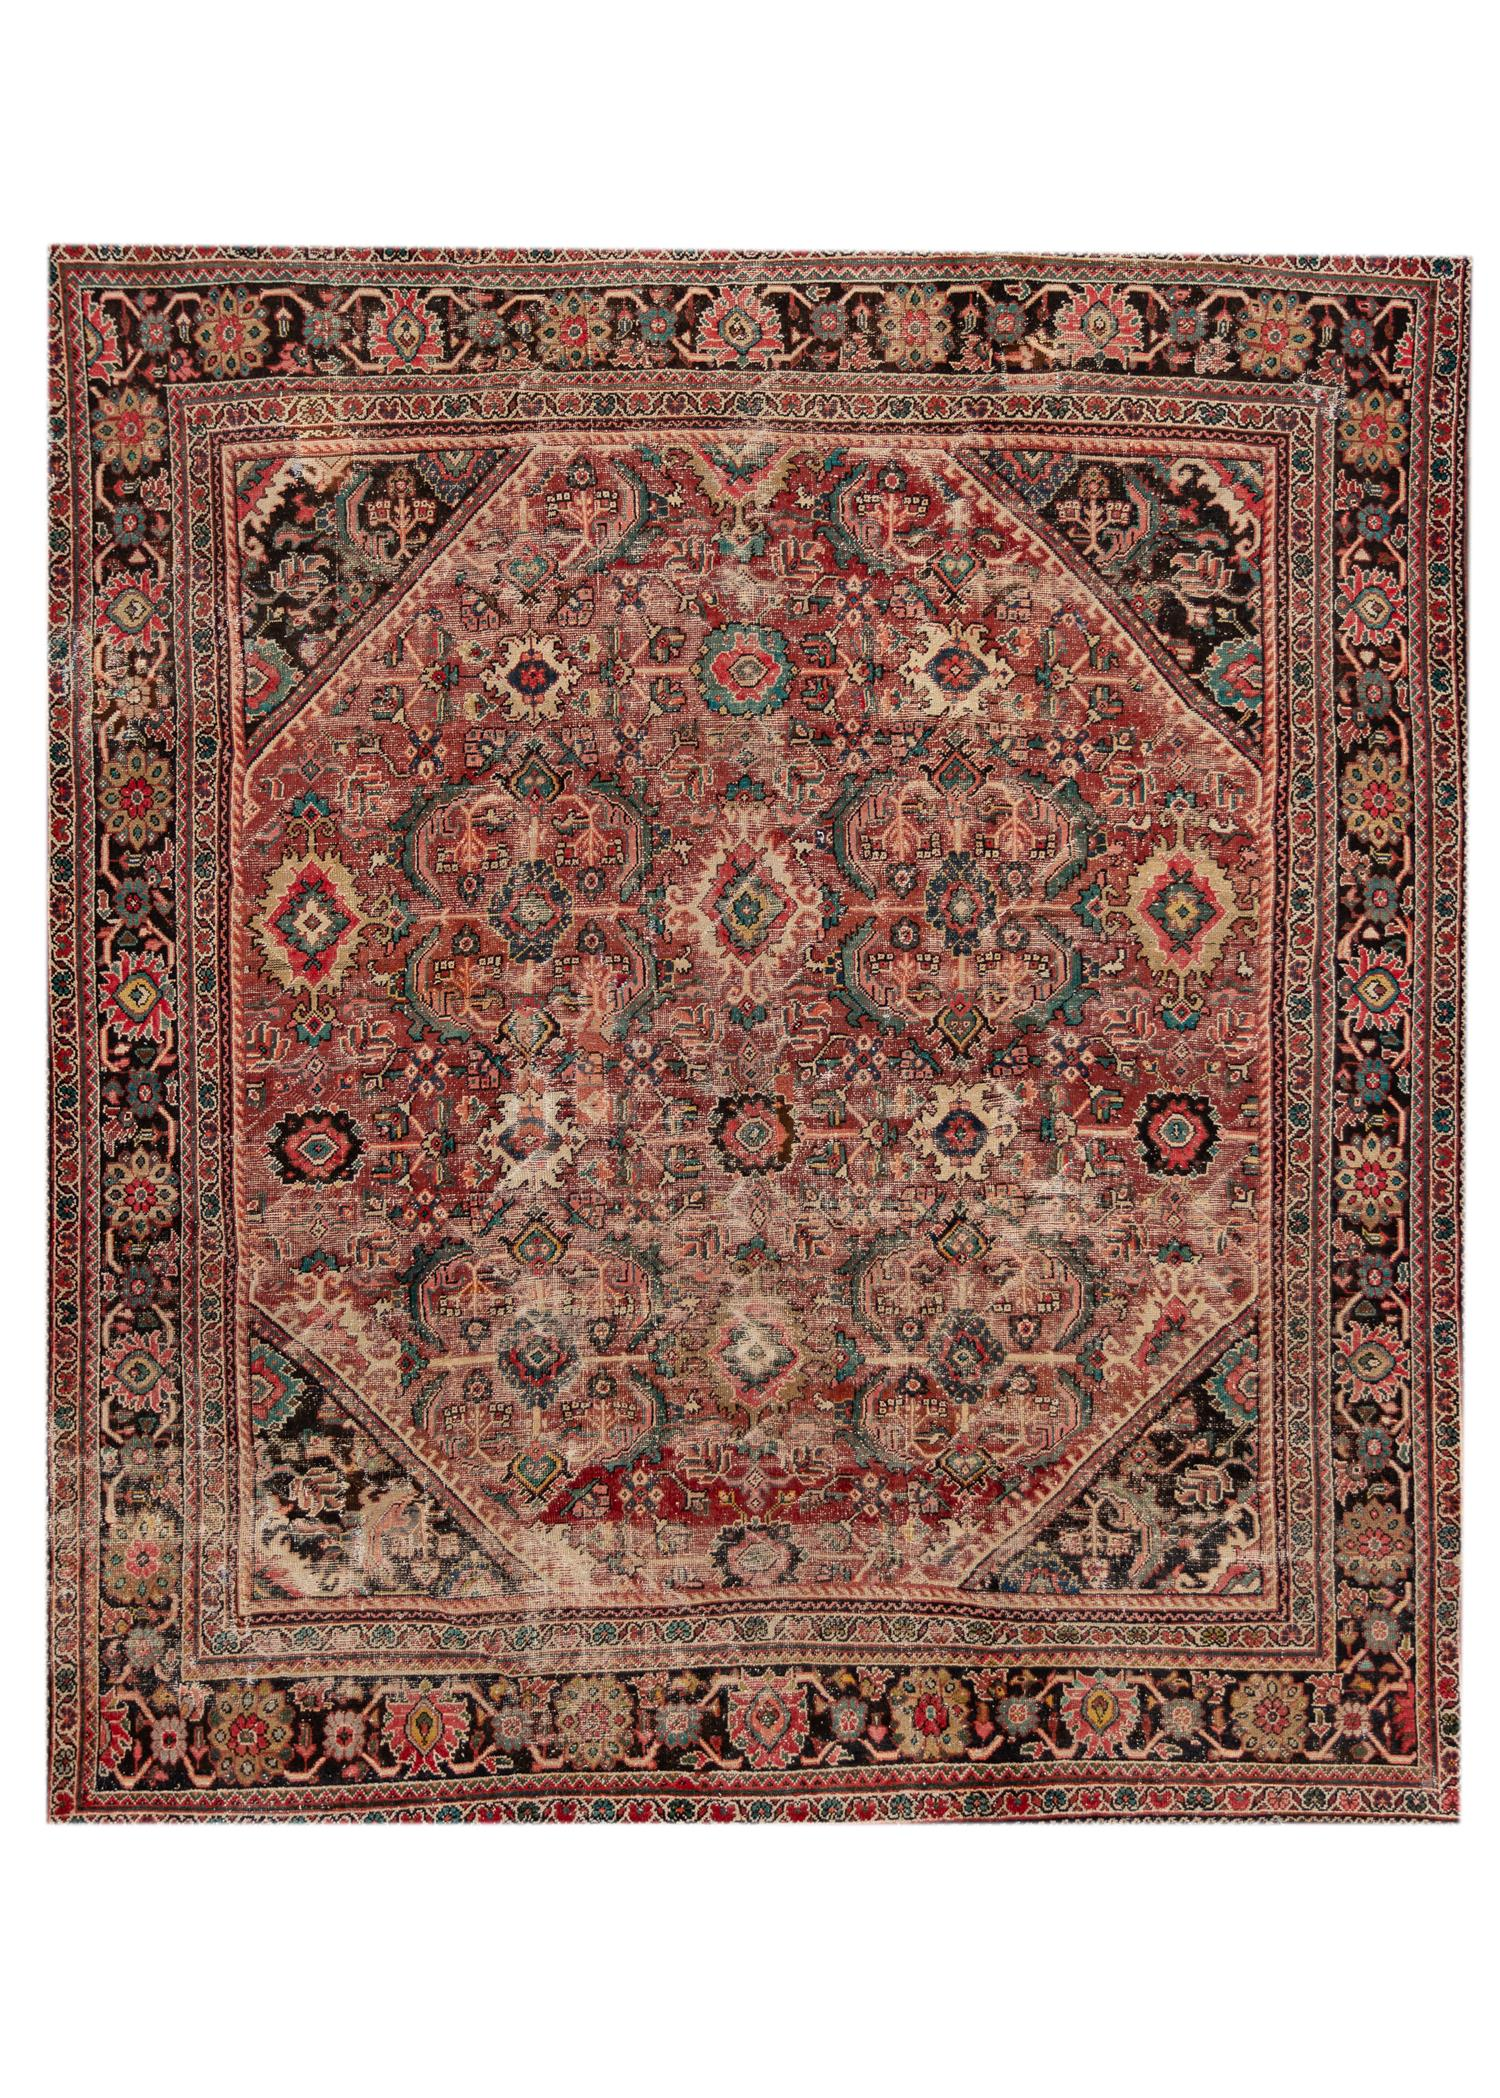 Antique 20th Century Mahal Rug, 11X12